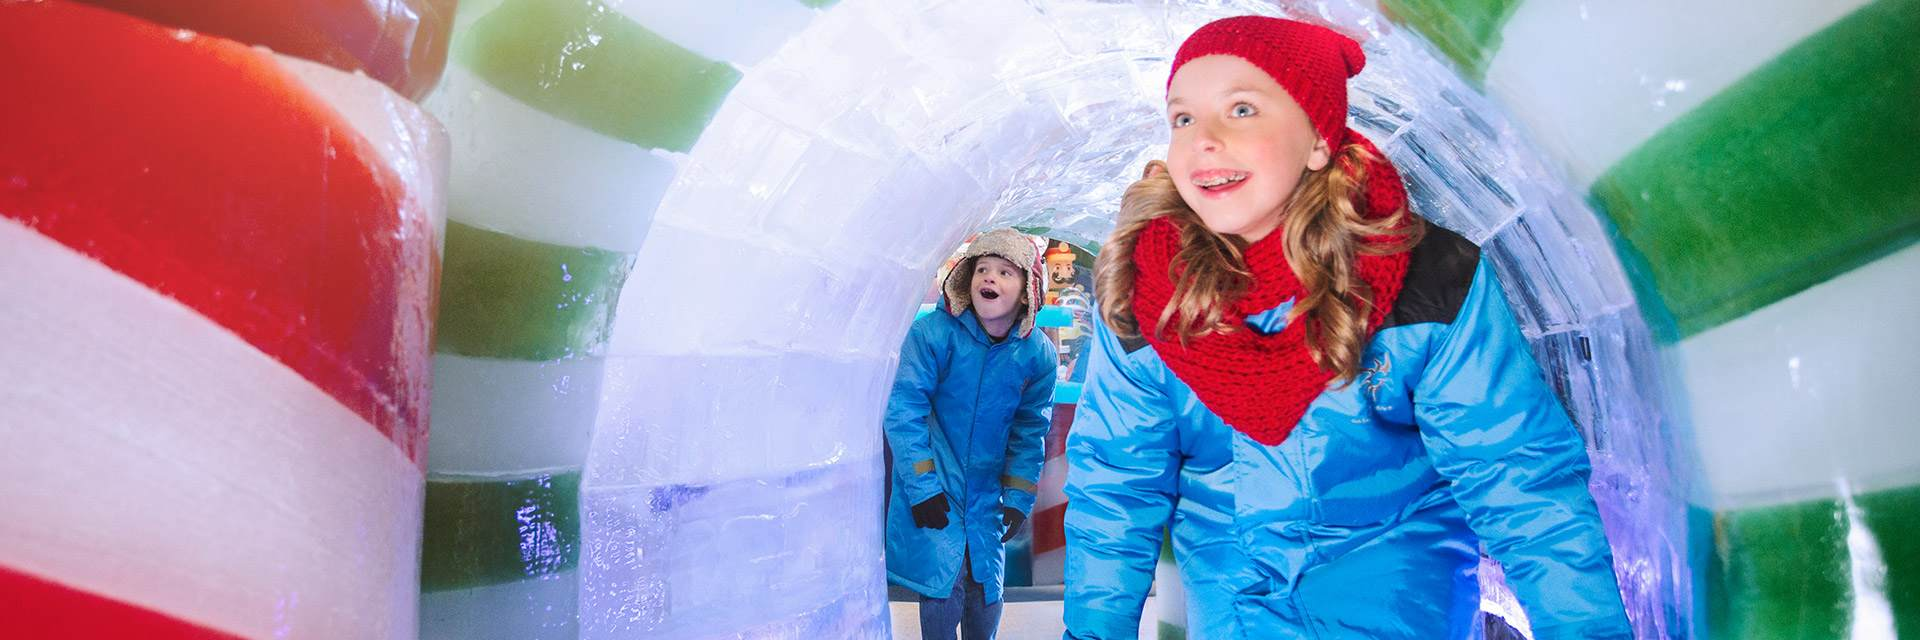 Ice World at Gaylord Texan Grapevine